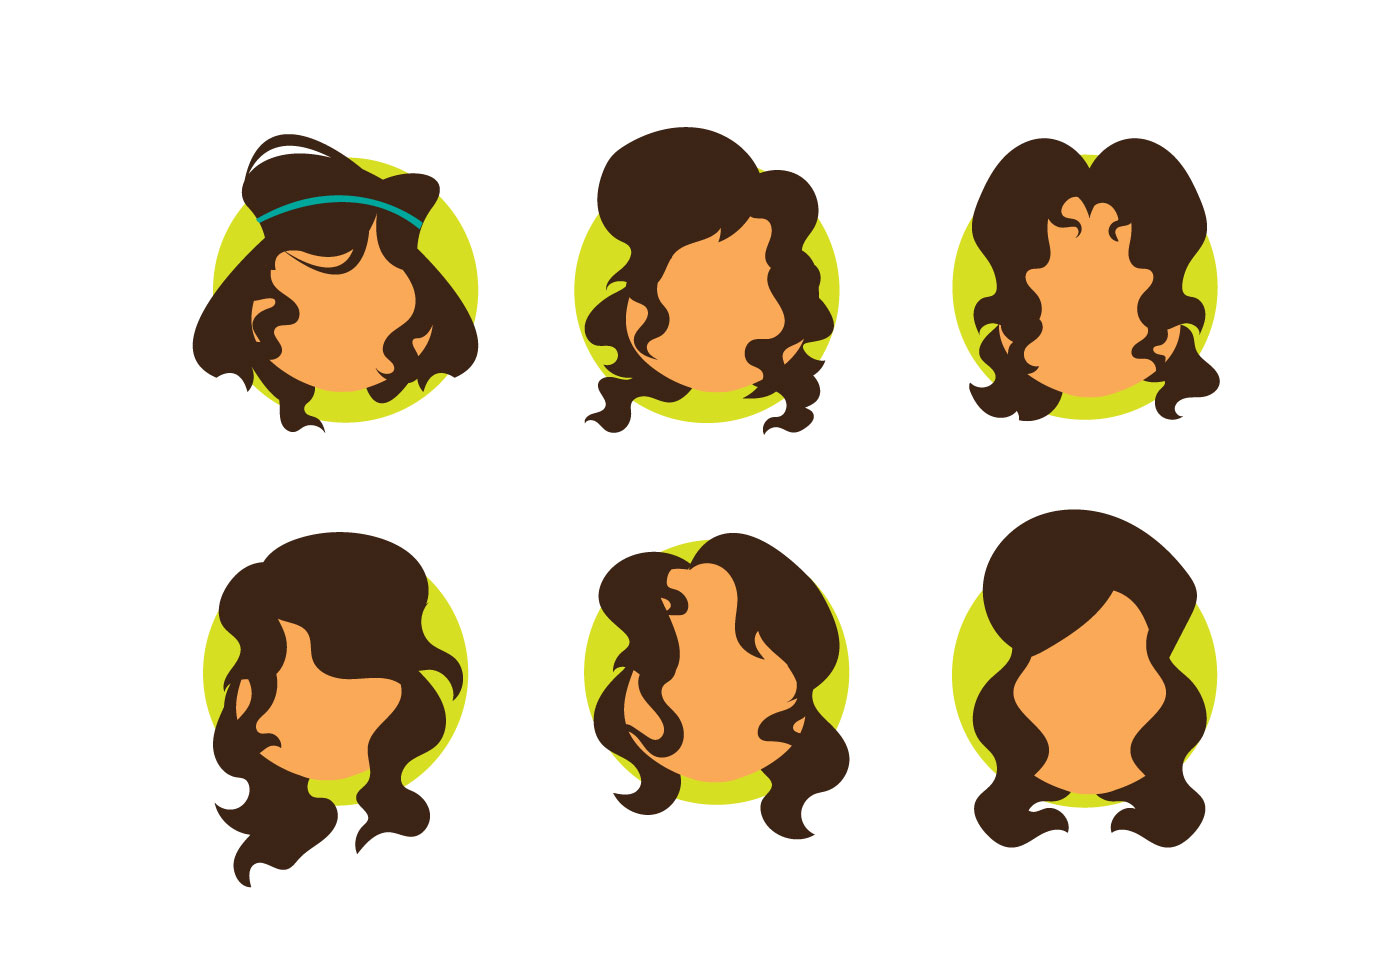 hair vector images - photo #35